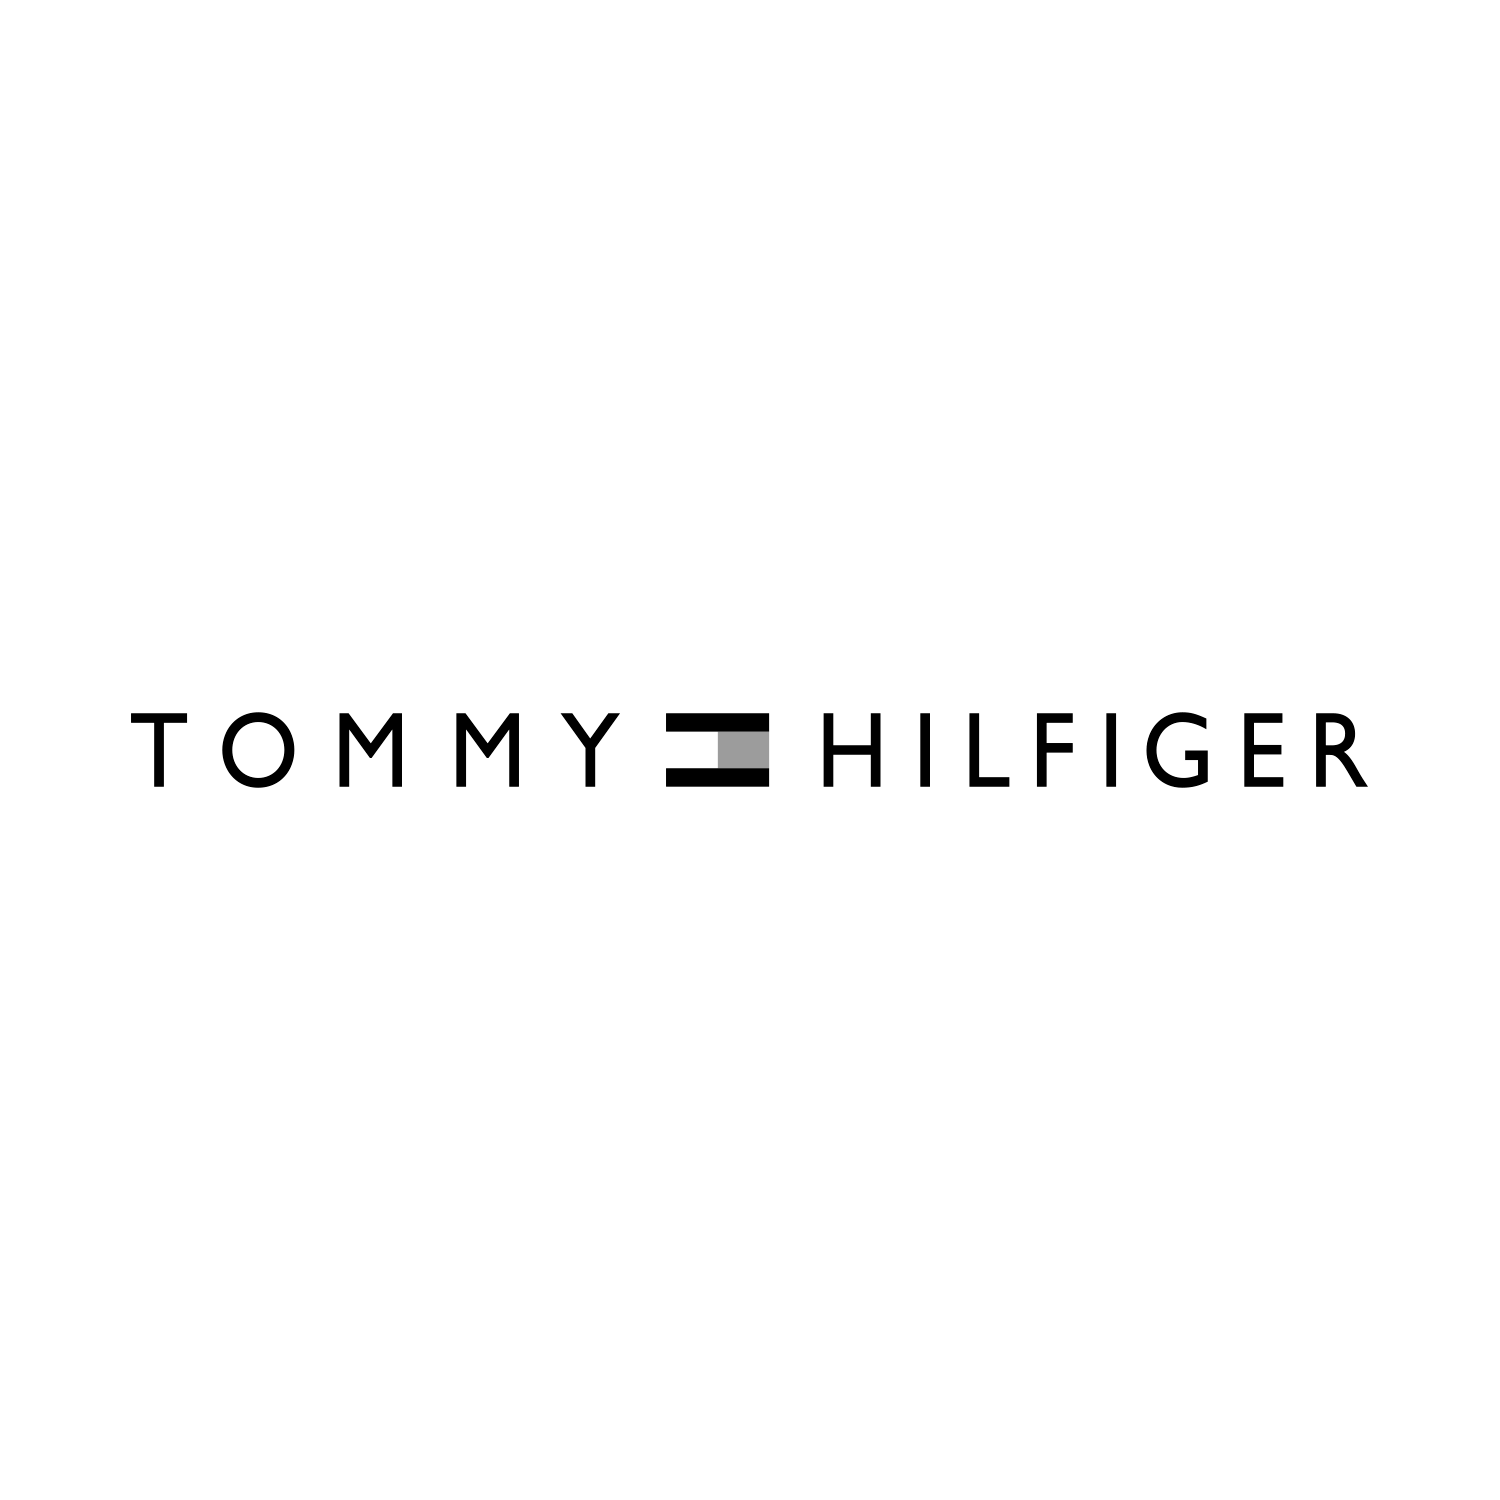 tommyhilfiger.png